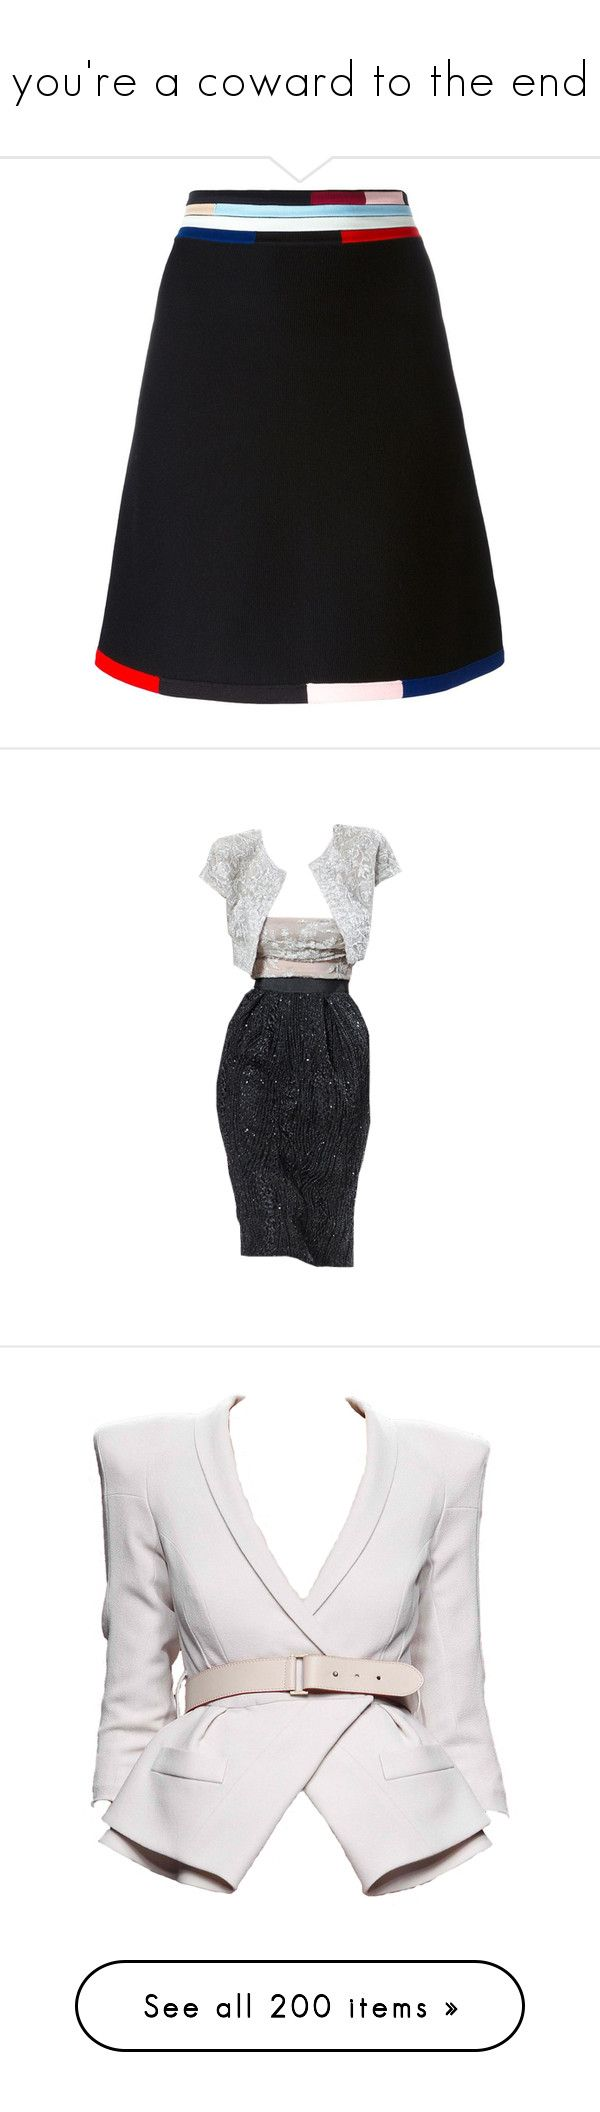 """""""you're a coward to the end"""" by minafromthe90s ❤ liked on Polyvore featuring skirts, black, christopher kane, high-waist skirt, striped a line skirt, multi color skirt, striped skirts, dresses, vestidos and short dresses"""